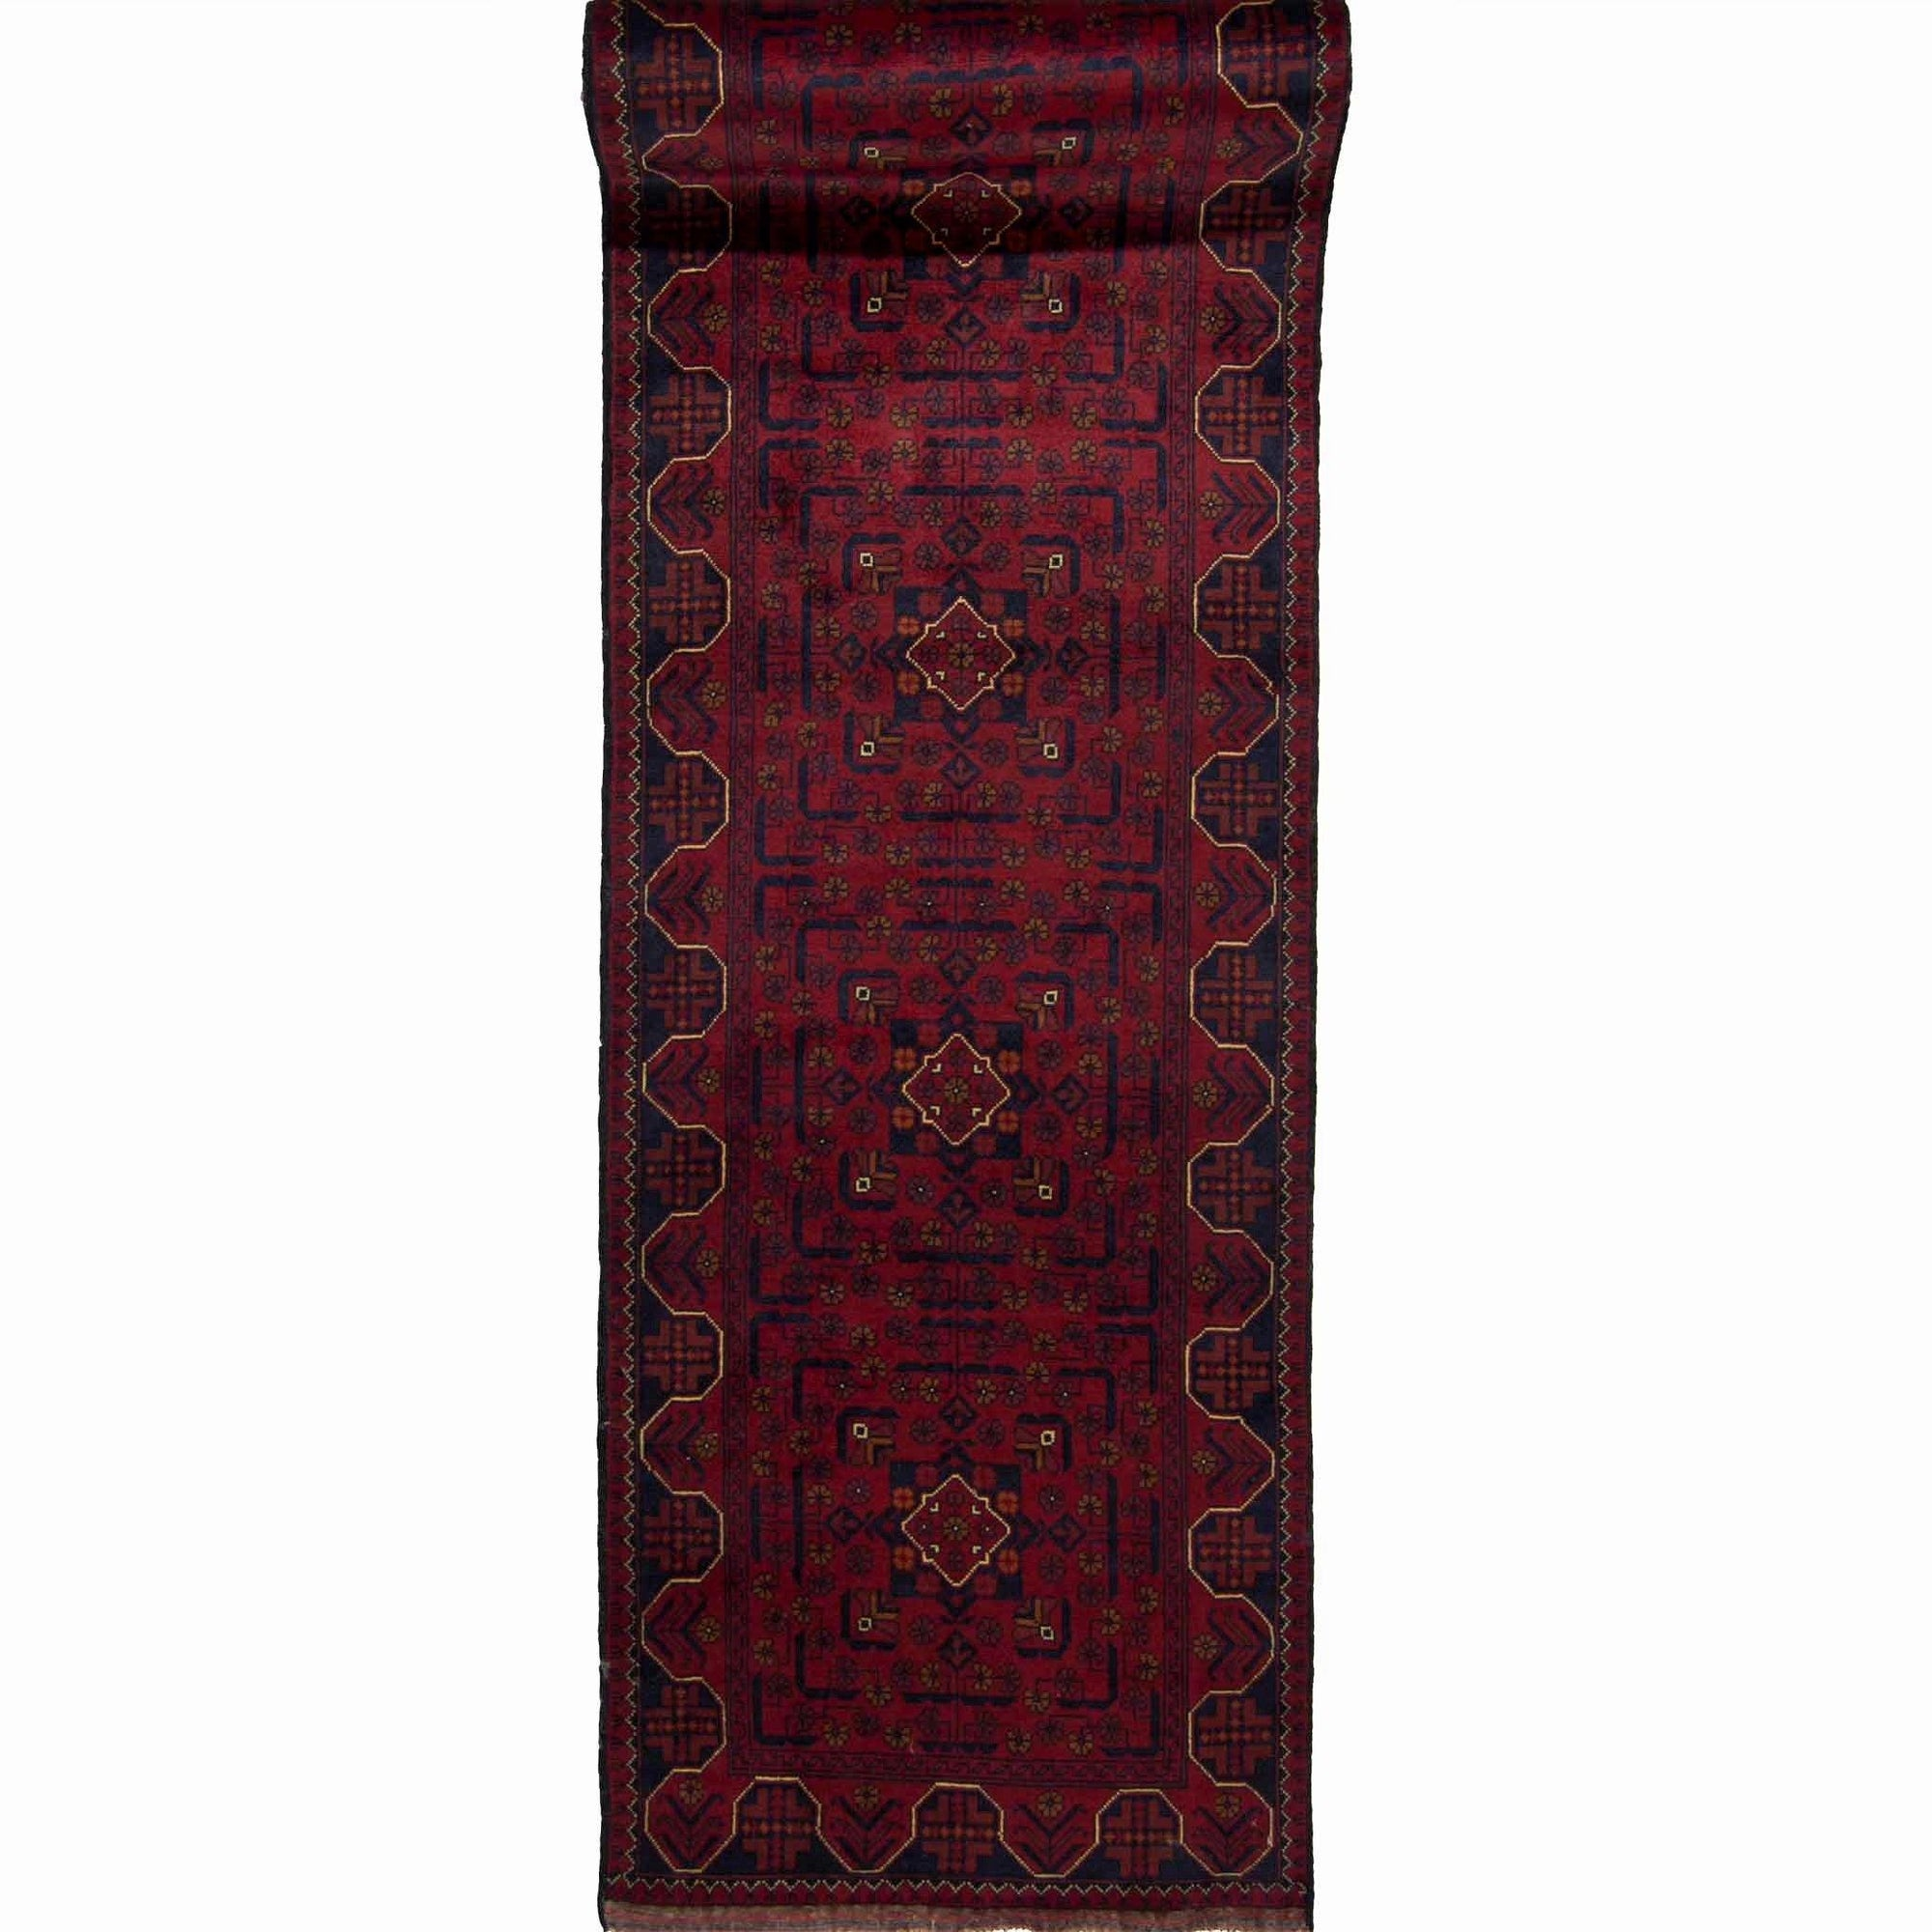 Fine Tribal 100% Wool  Hand-knotted Khal Mohammadi Runner 77cm x 581cm Persian-Rug | House-of-Haghi | NewMarket | Auckland | NZ | Handmade Persian Rugs | Hand Knotted Persian Rugs